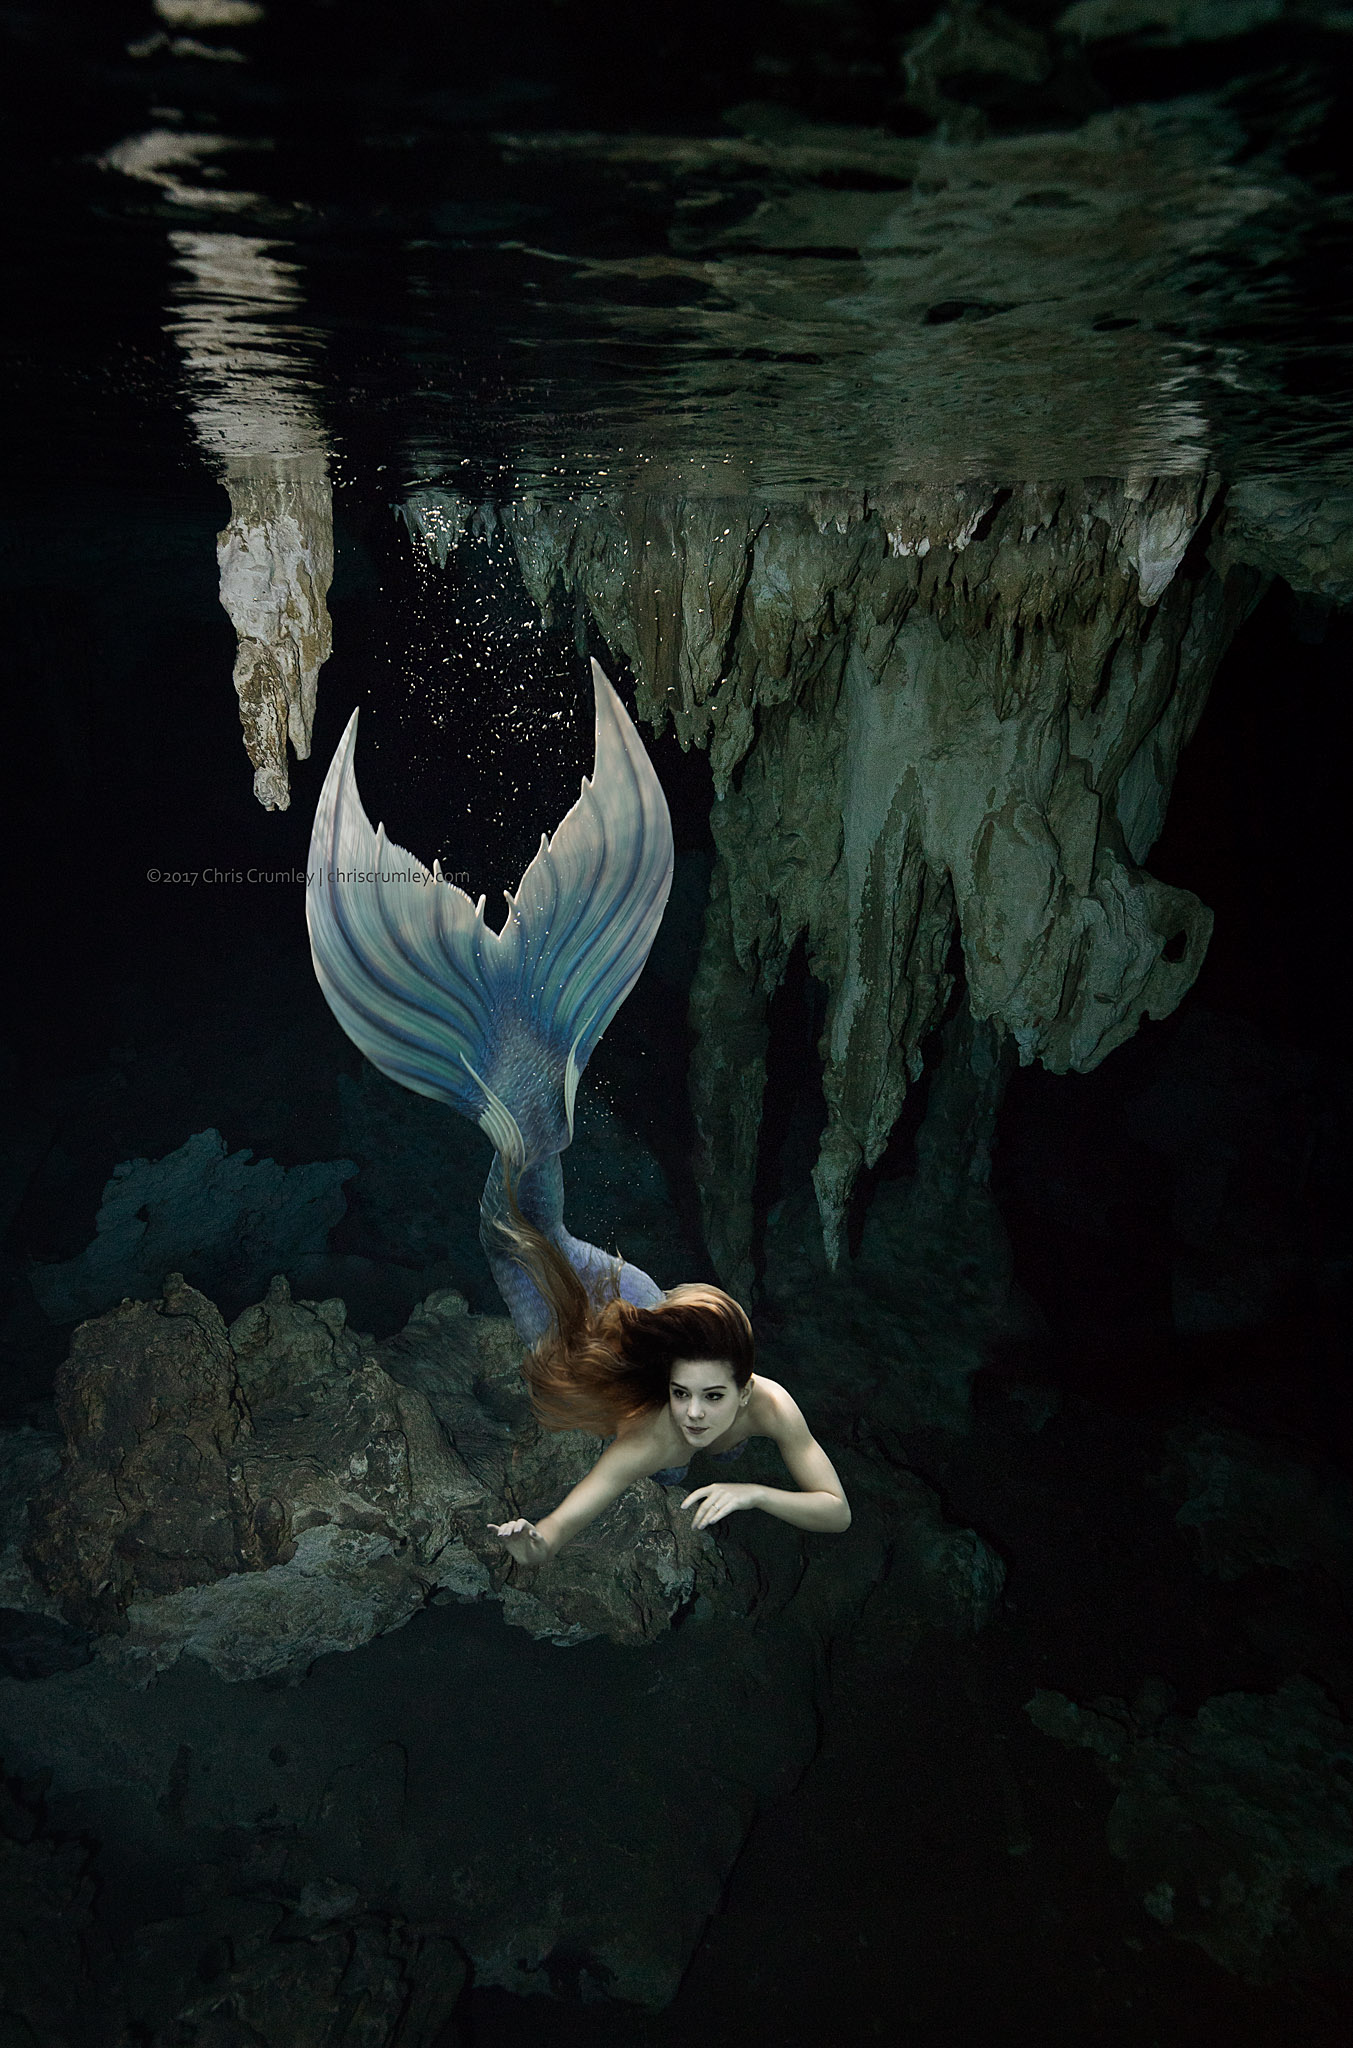 Mermaid in Dos Ojos II Cenote, Yucatan Peninsula, Mexico